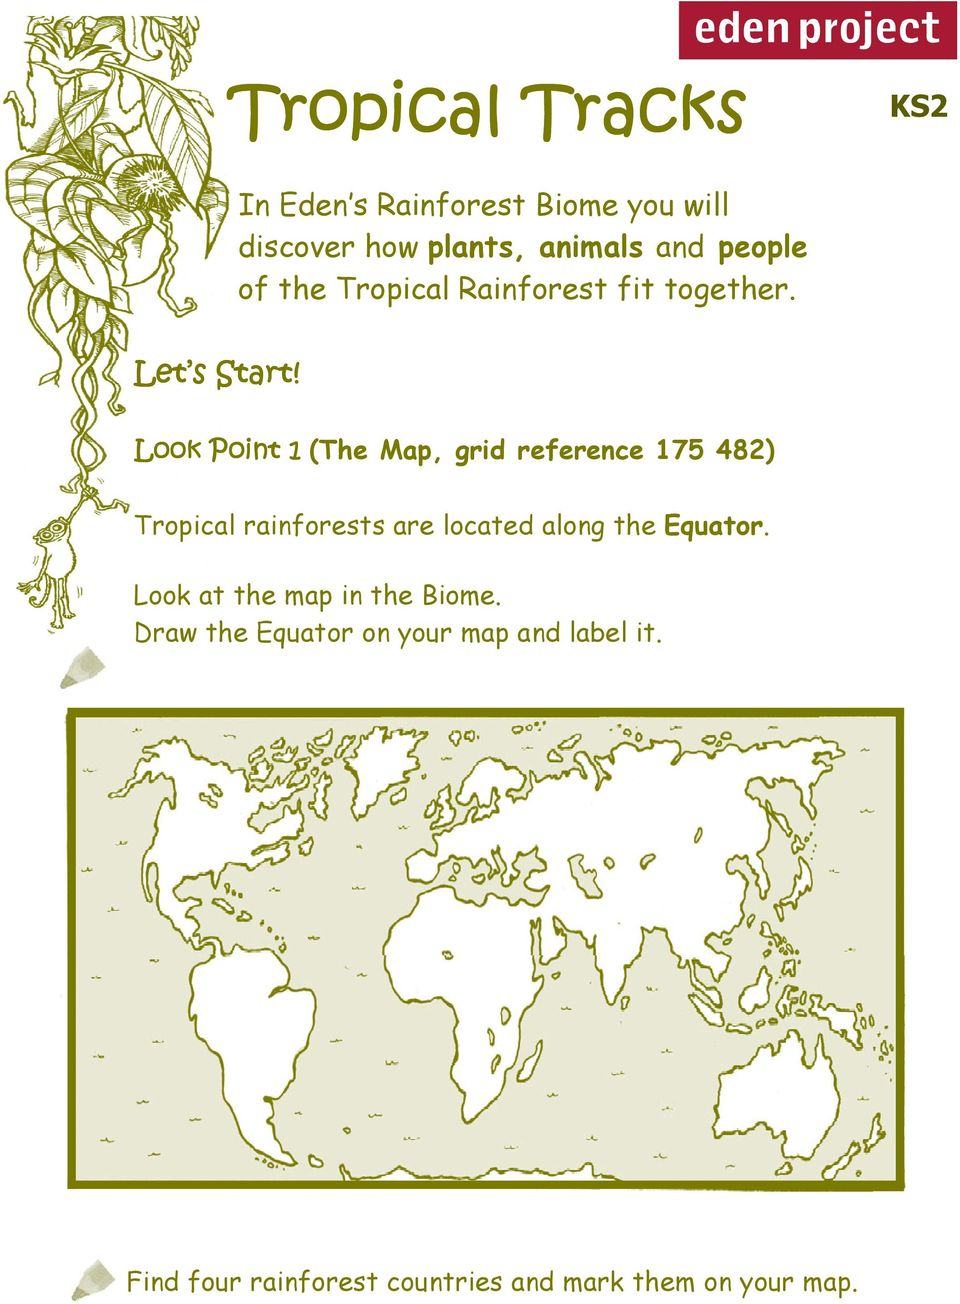 Look Point 1 (The Map, grid reference 175 482) Tropical rainforests are located along the